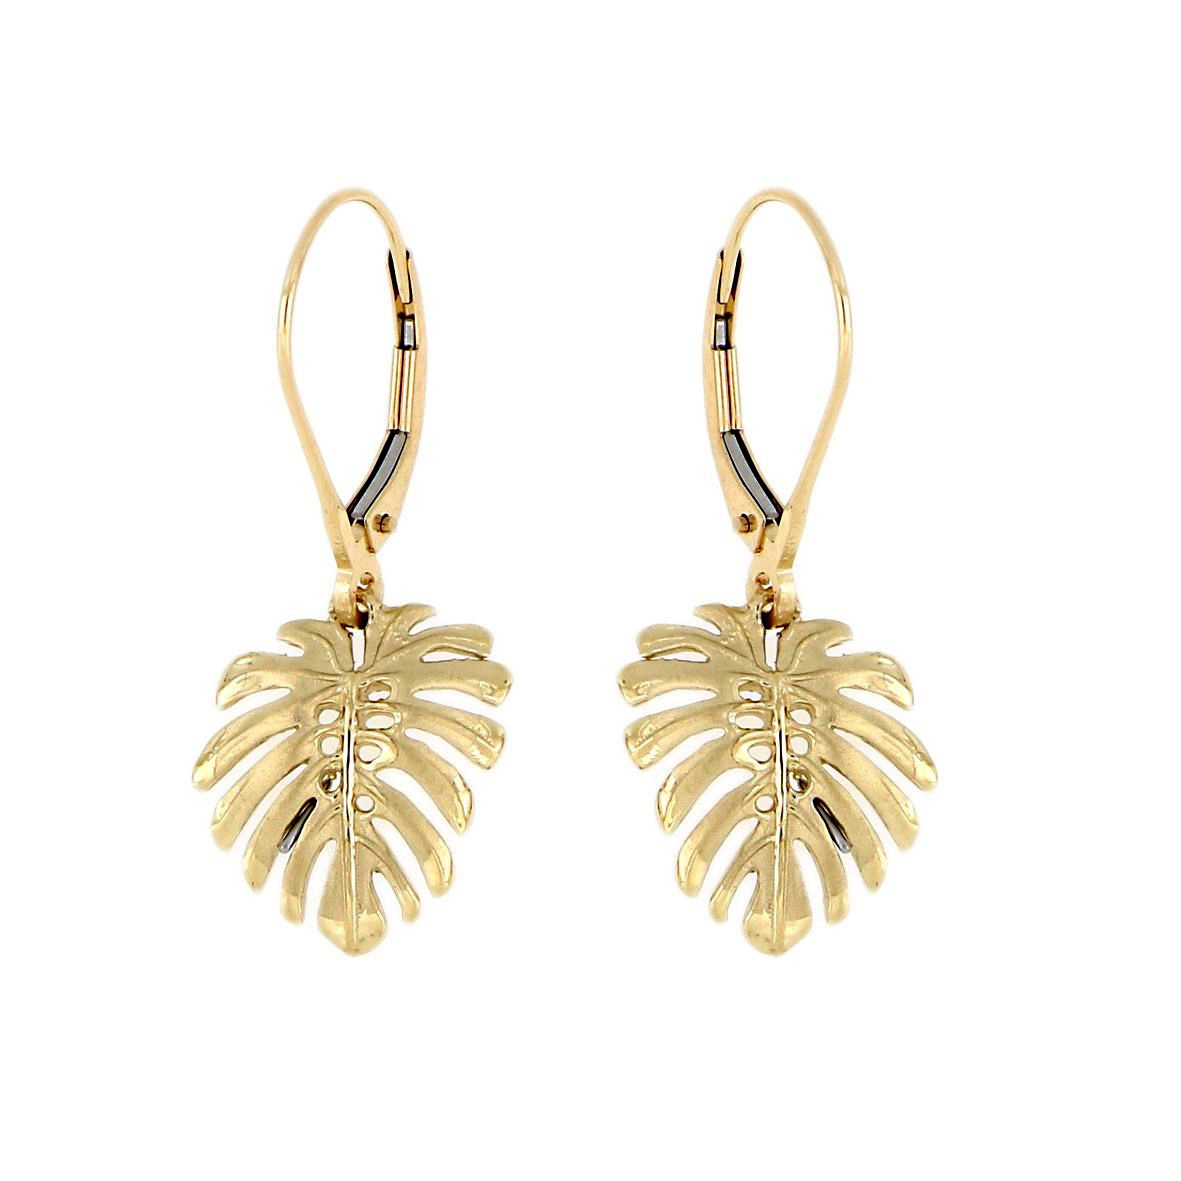 14KT Yellow Gold Hawaiian Monstera Leaf Earrings with Lever Back (M)